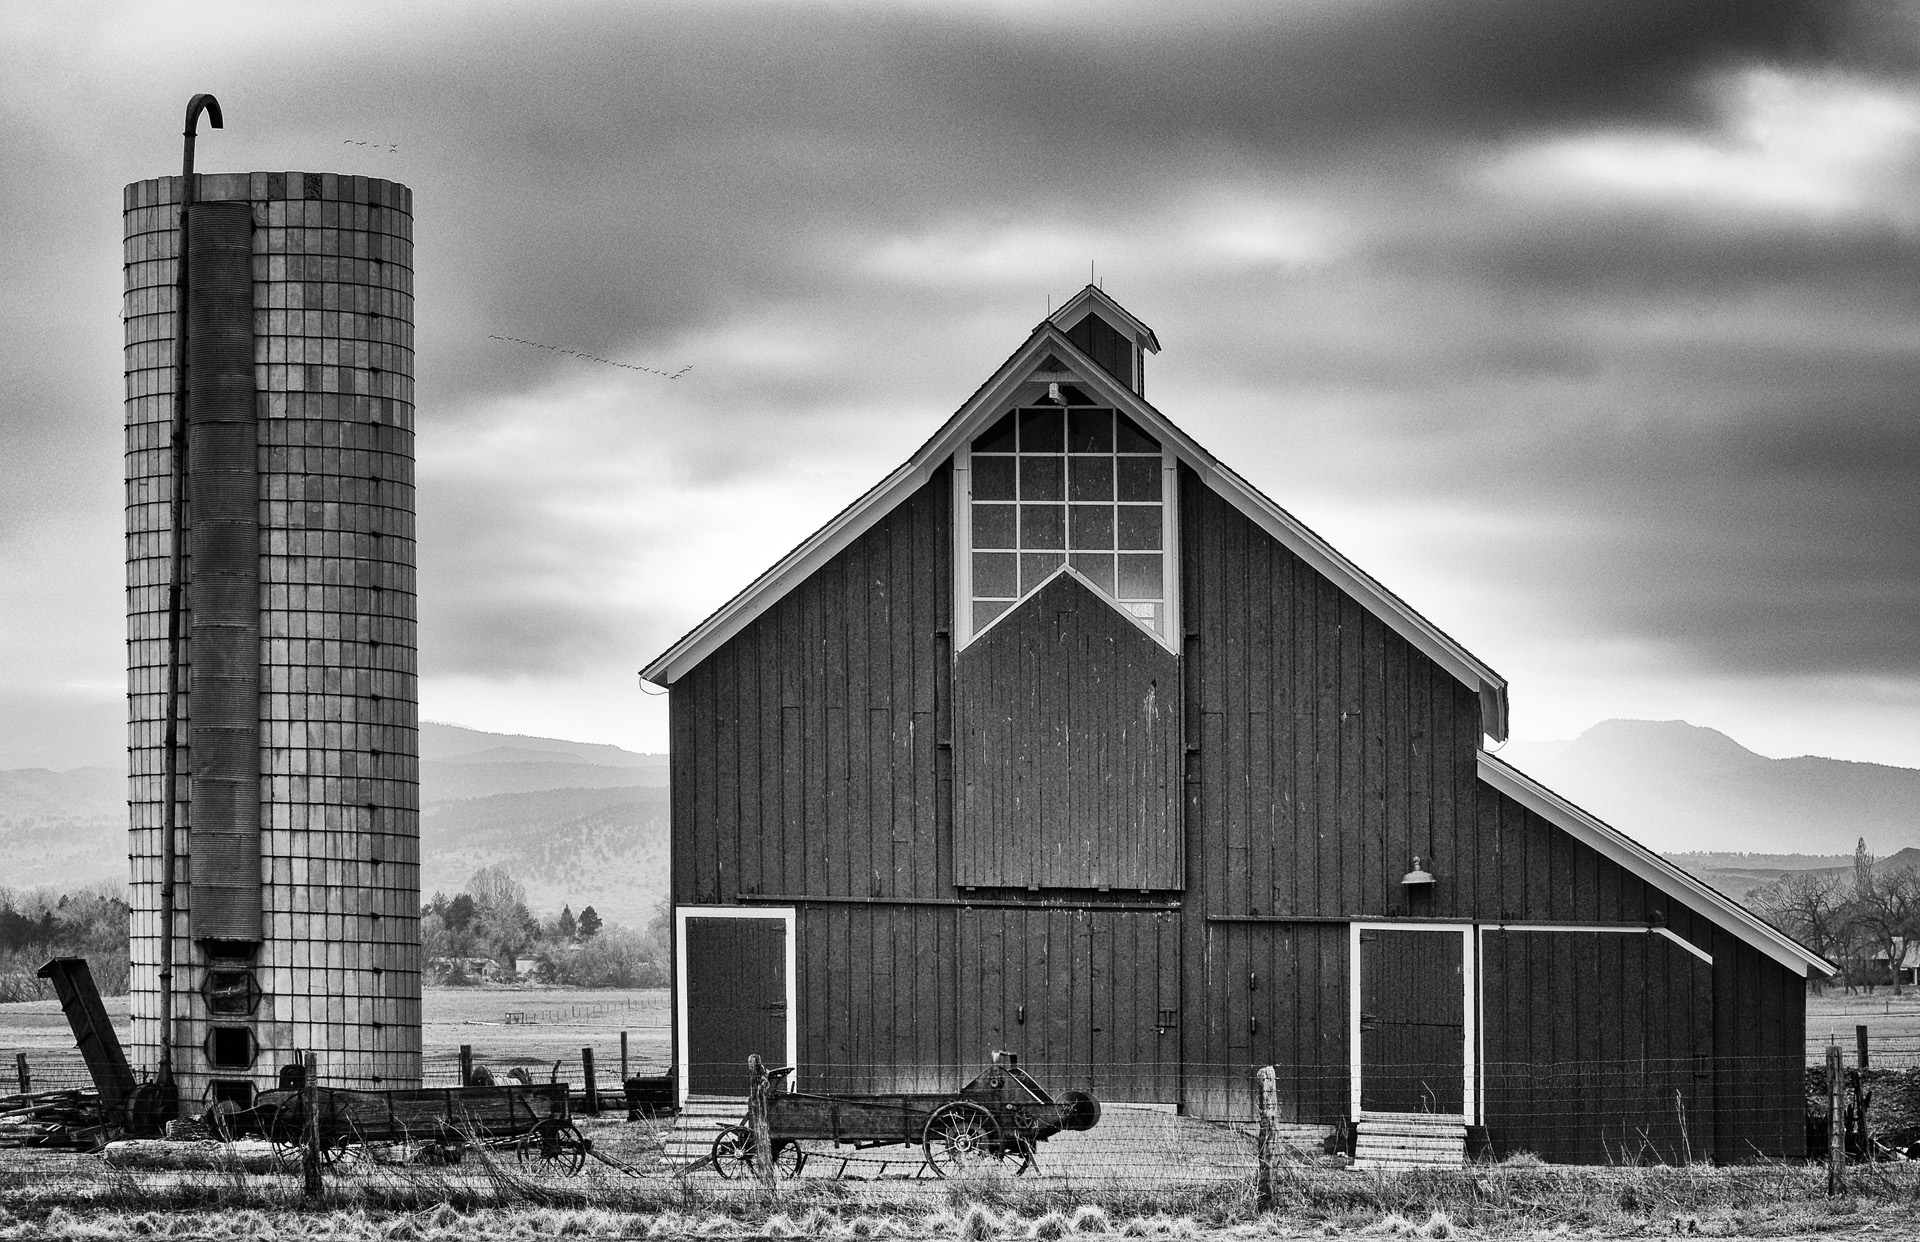 The L-M Farm. Boulder County, Colorado, 2012